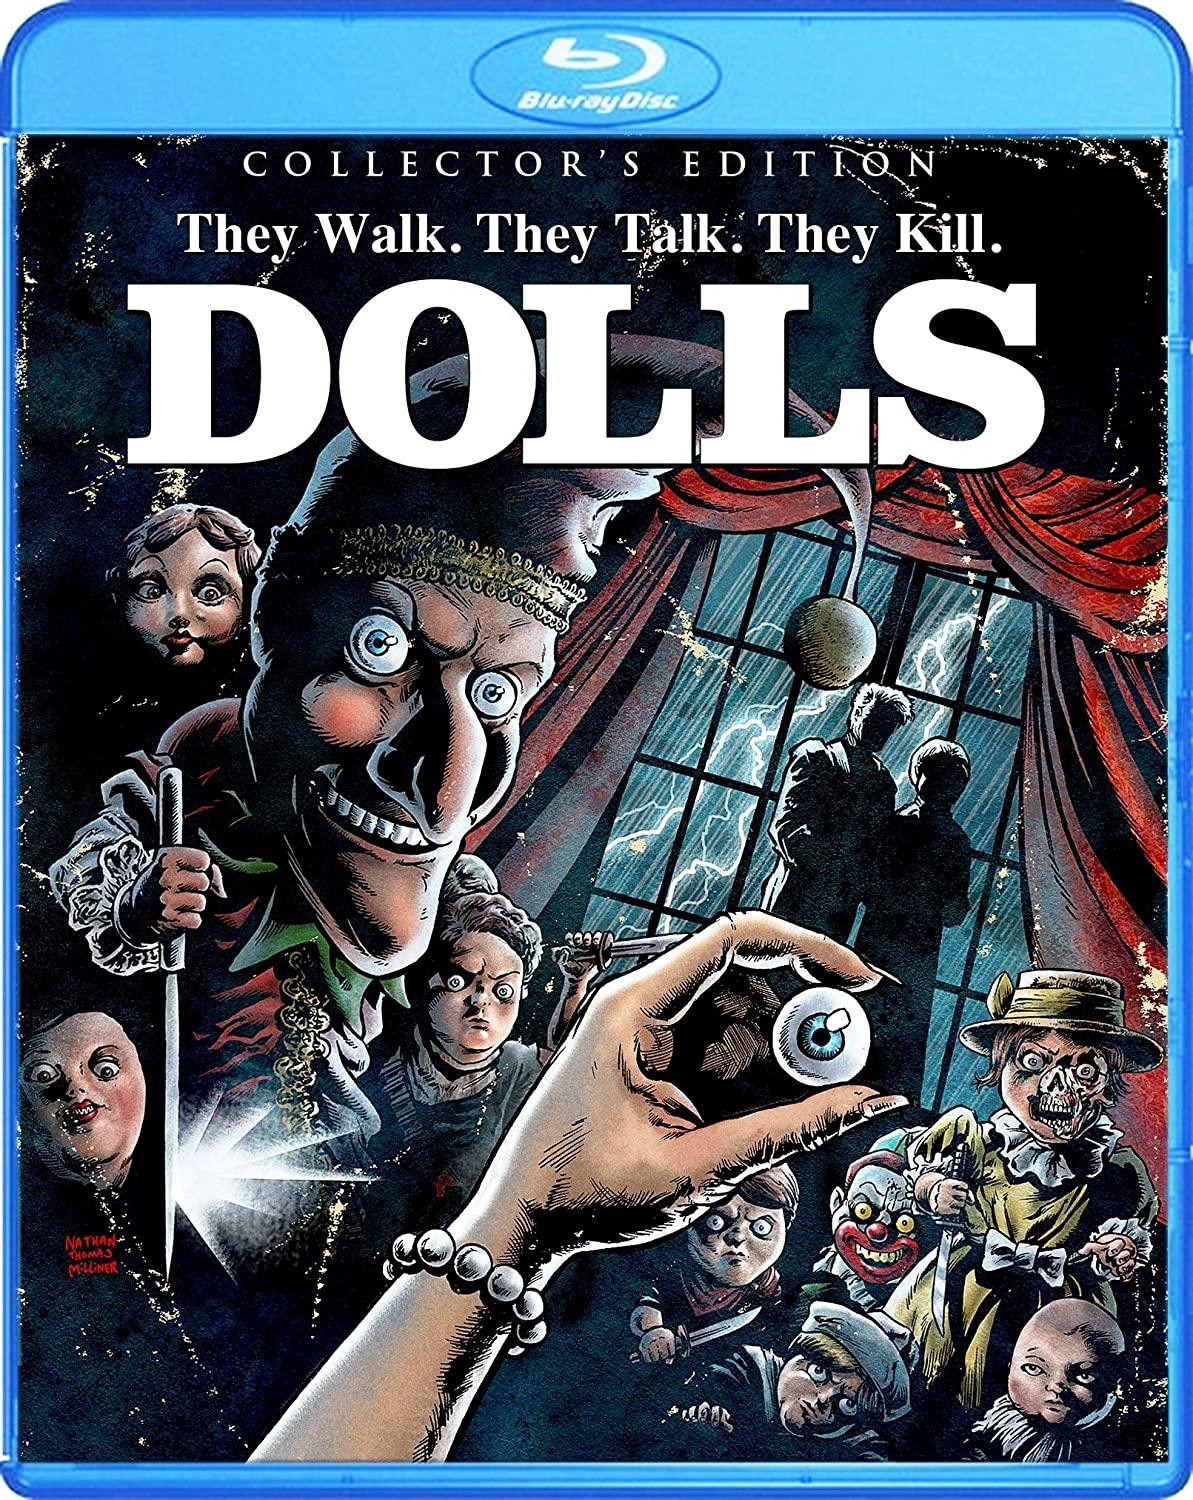 A a doll s house characters cast list of characters from a - Amazon Com Dolls Collector S Edition Blu Ray Ian Patrick Williams Carolyn Purdy Gordon Carrie Lorraine Stuart Gordon Movies Tv